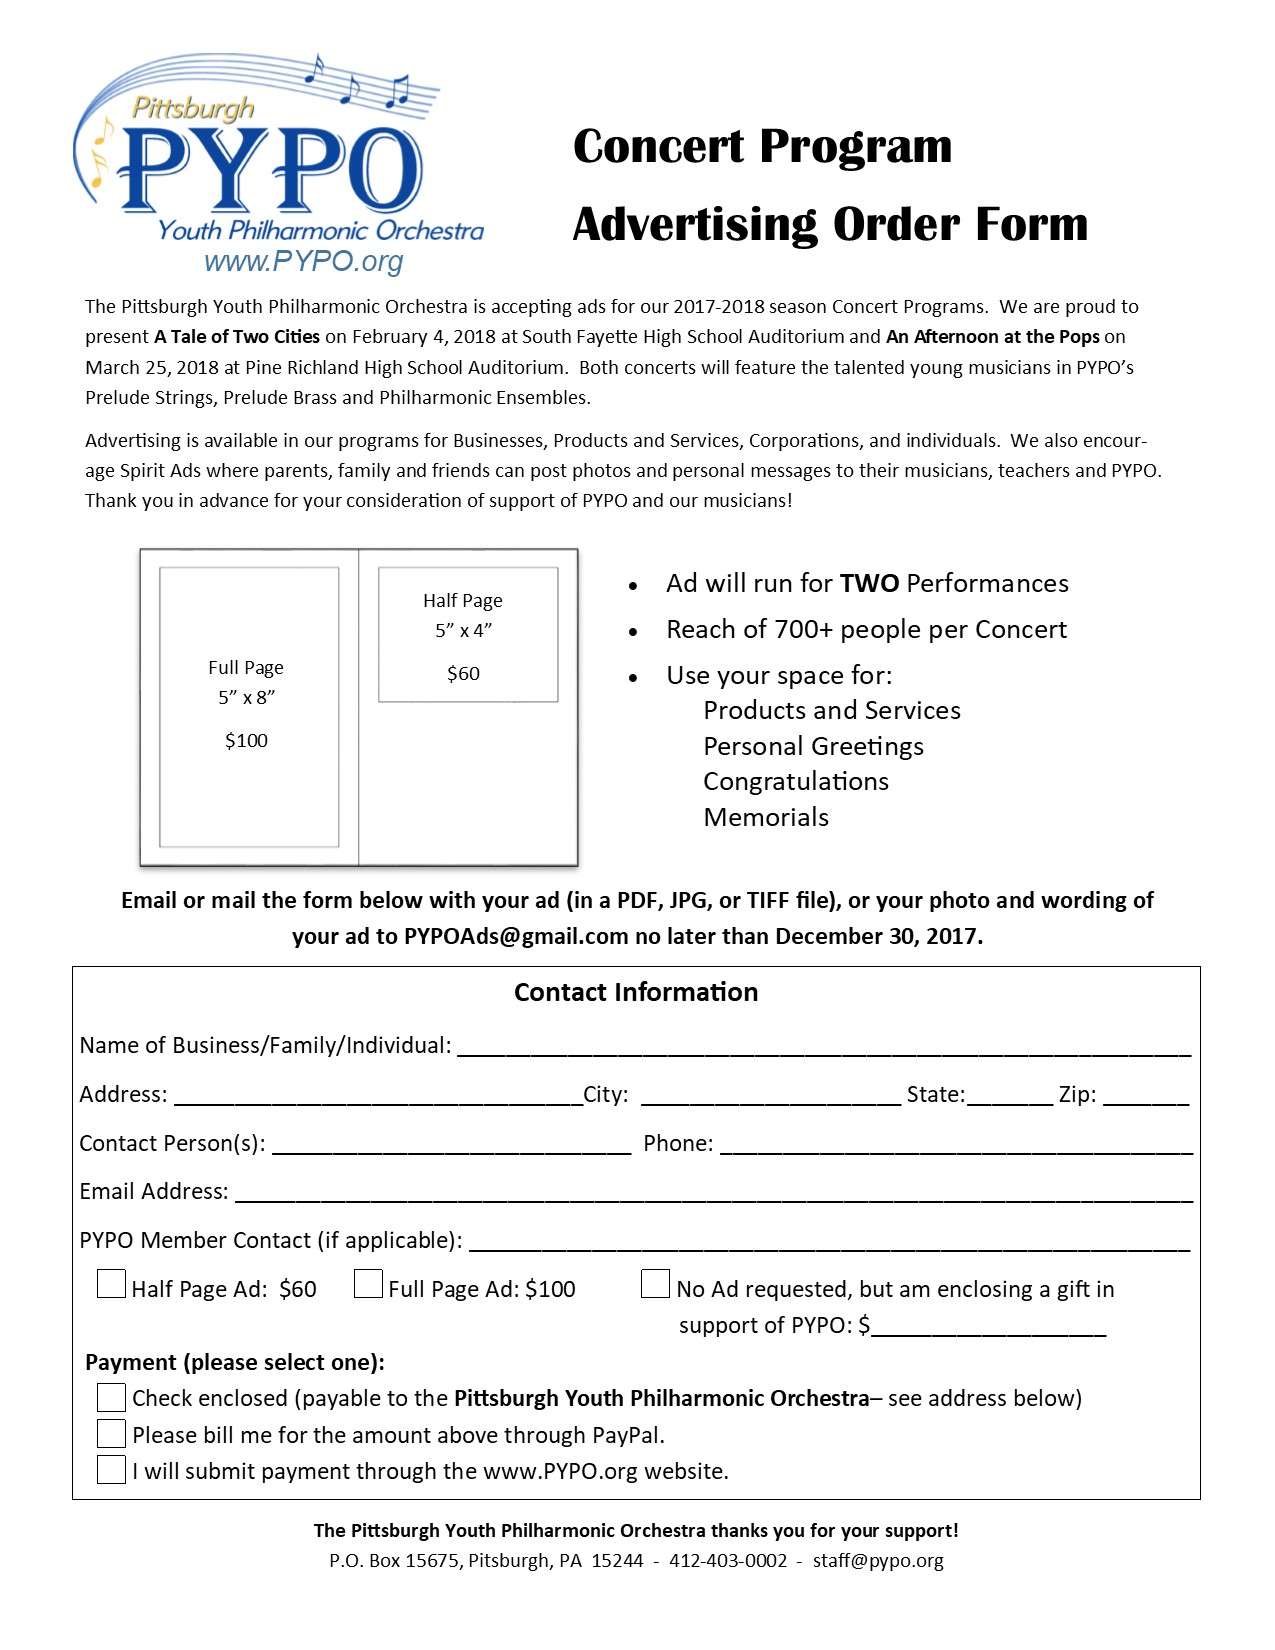 pypo-program-ad-form-2017-2018